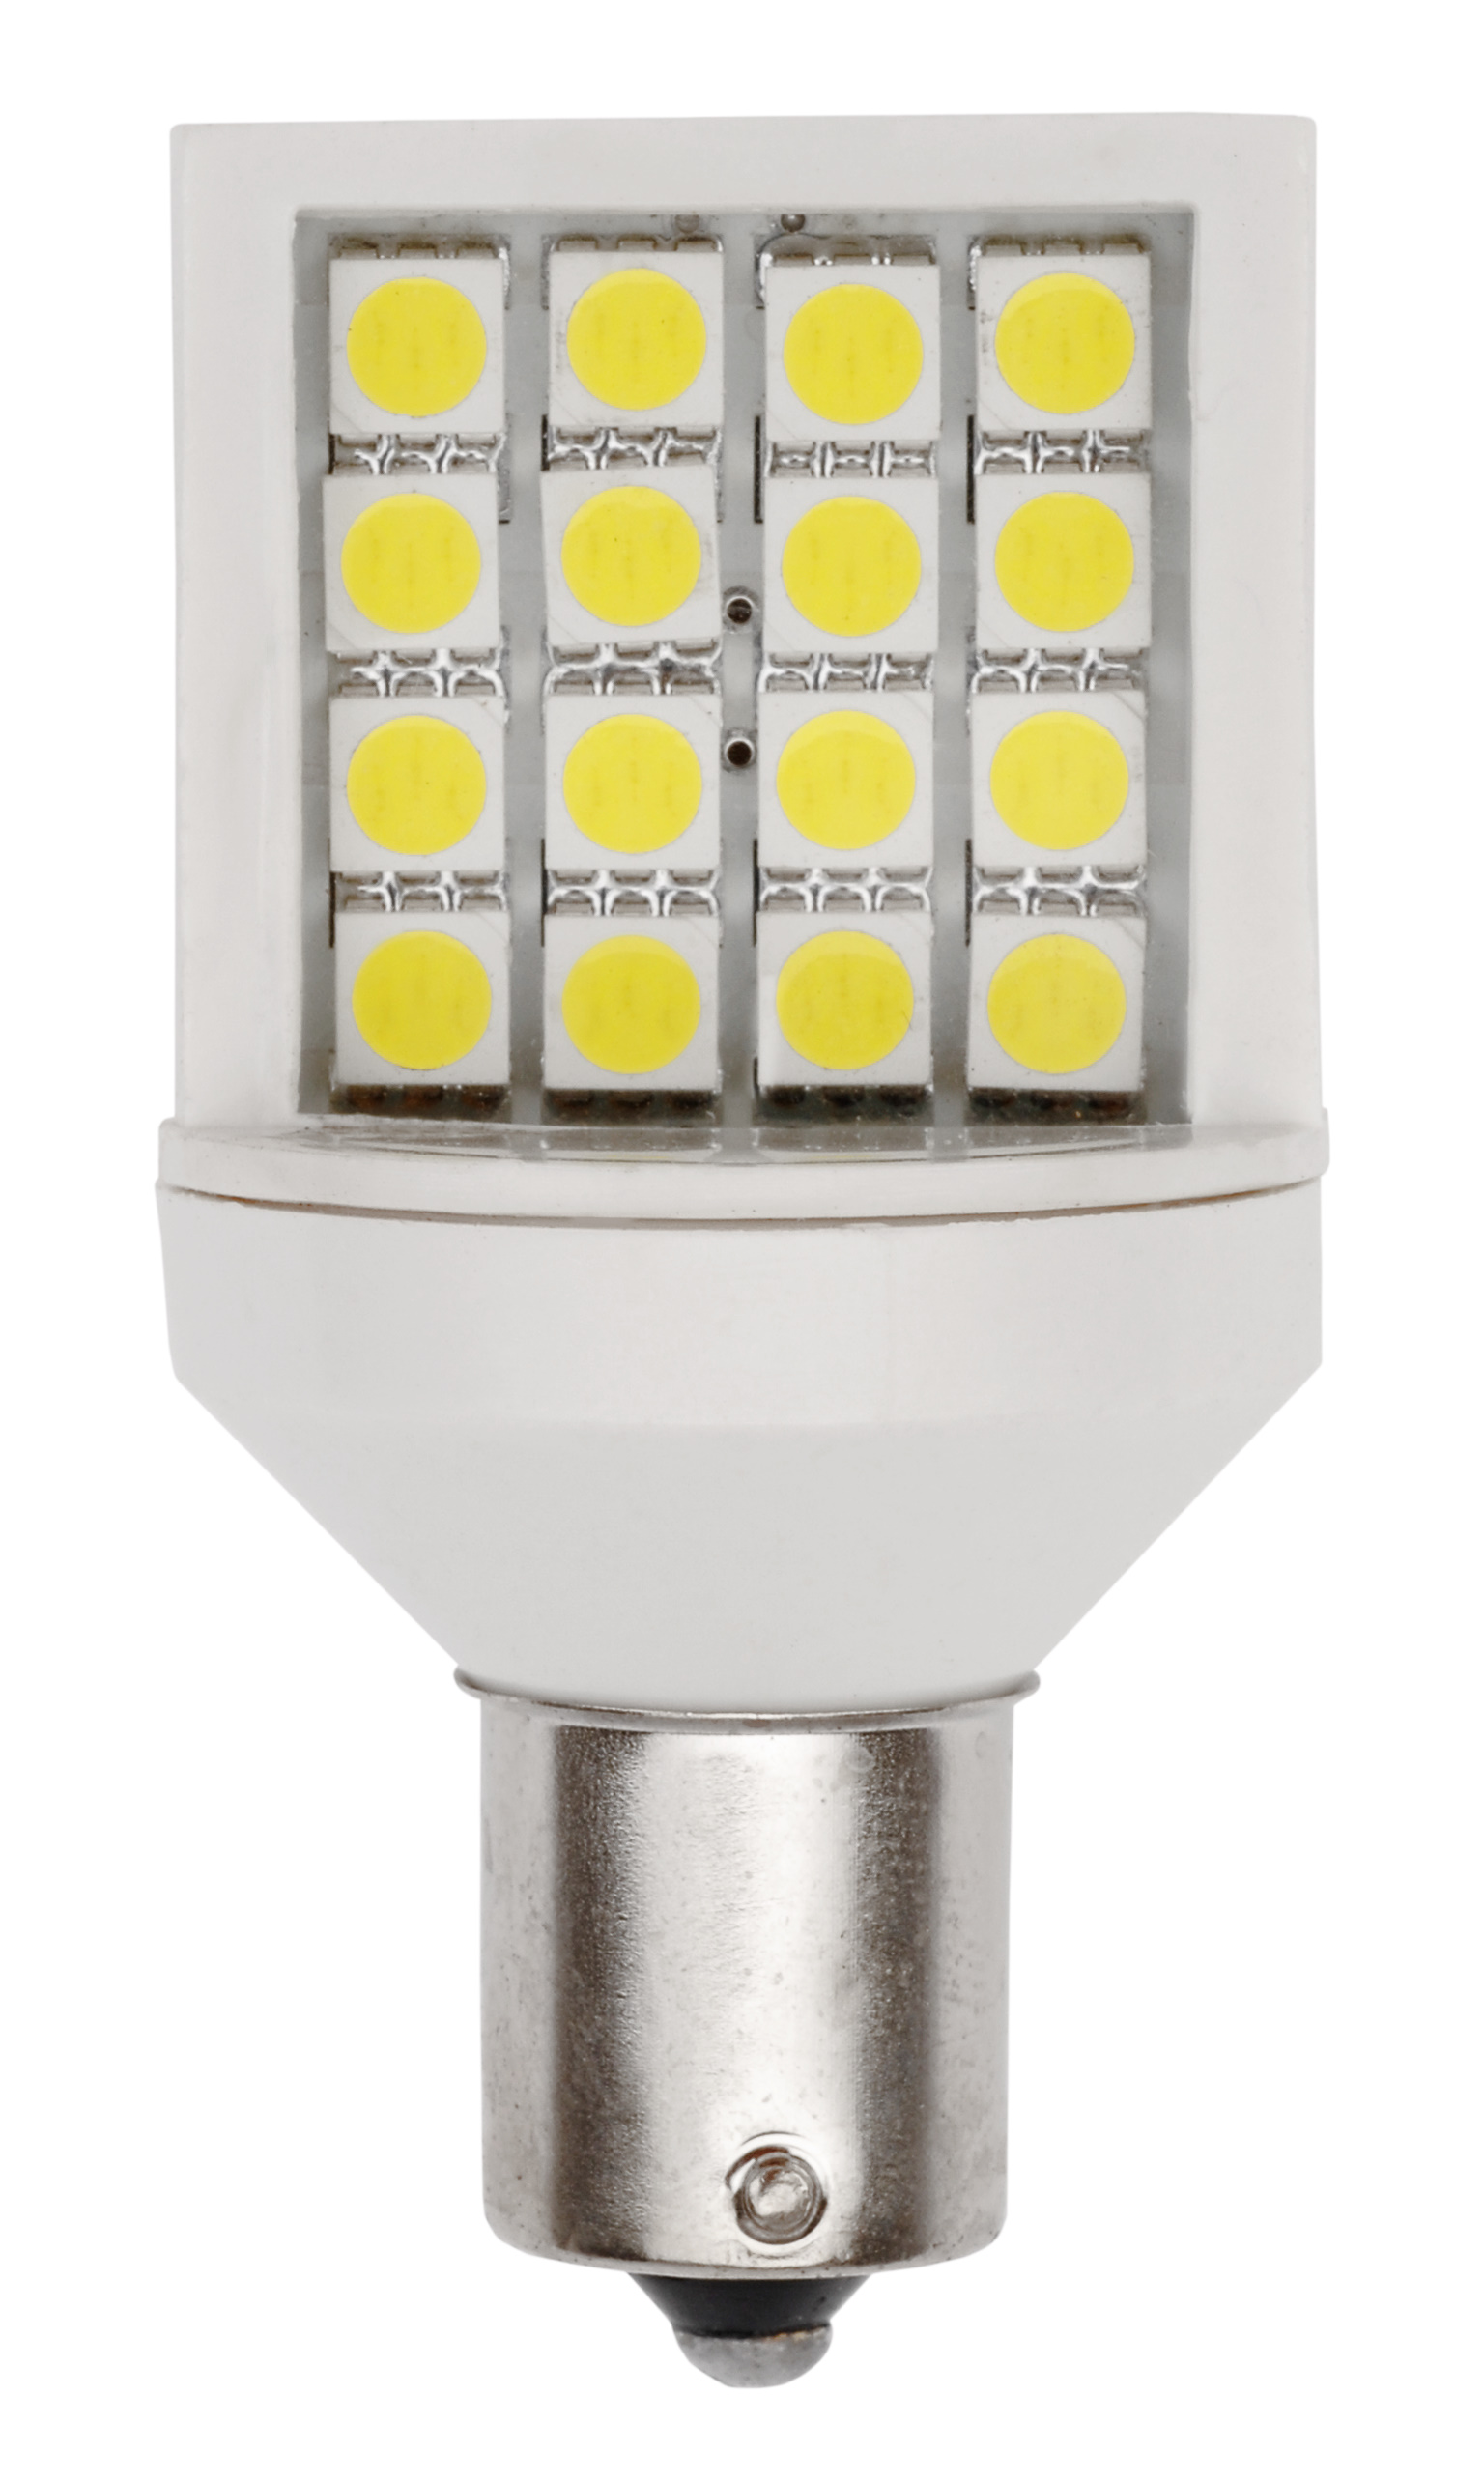 016-1141-300 AP Products Multi Purpose Light Bulb- LED Replacement